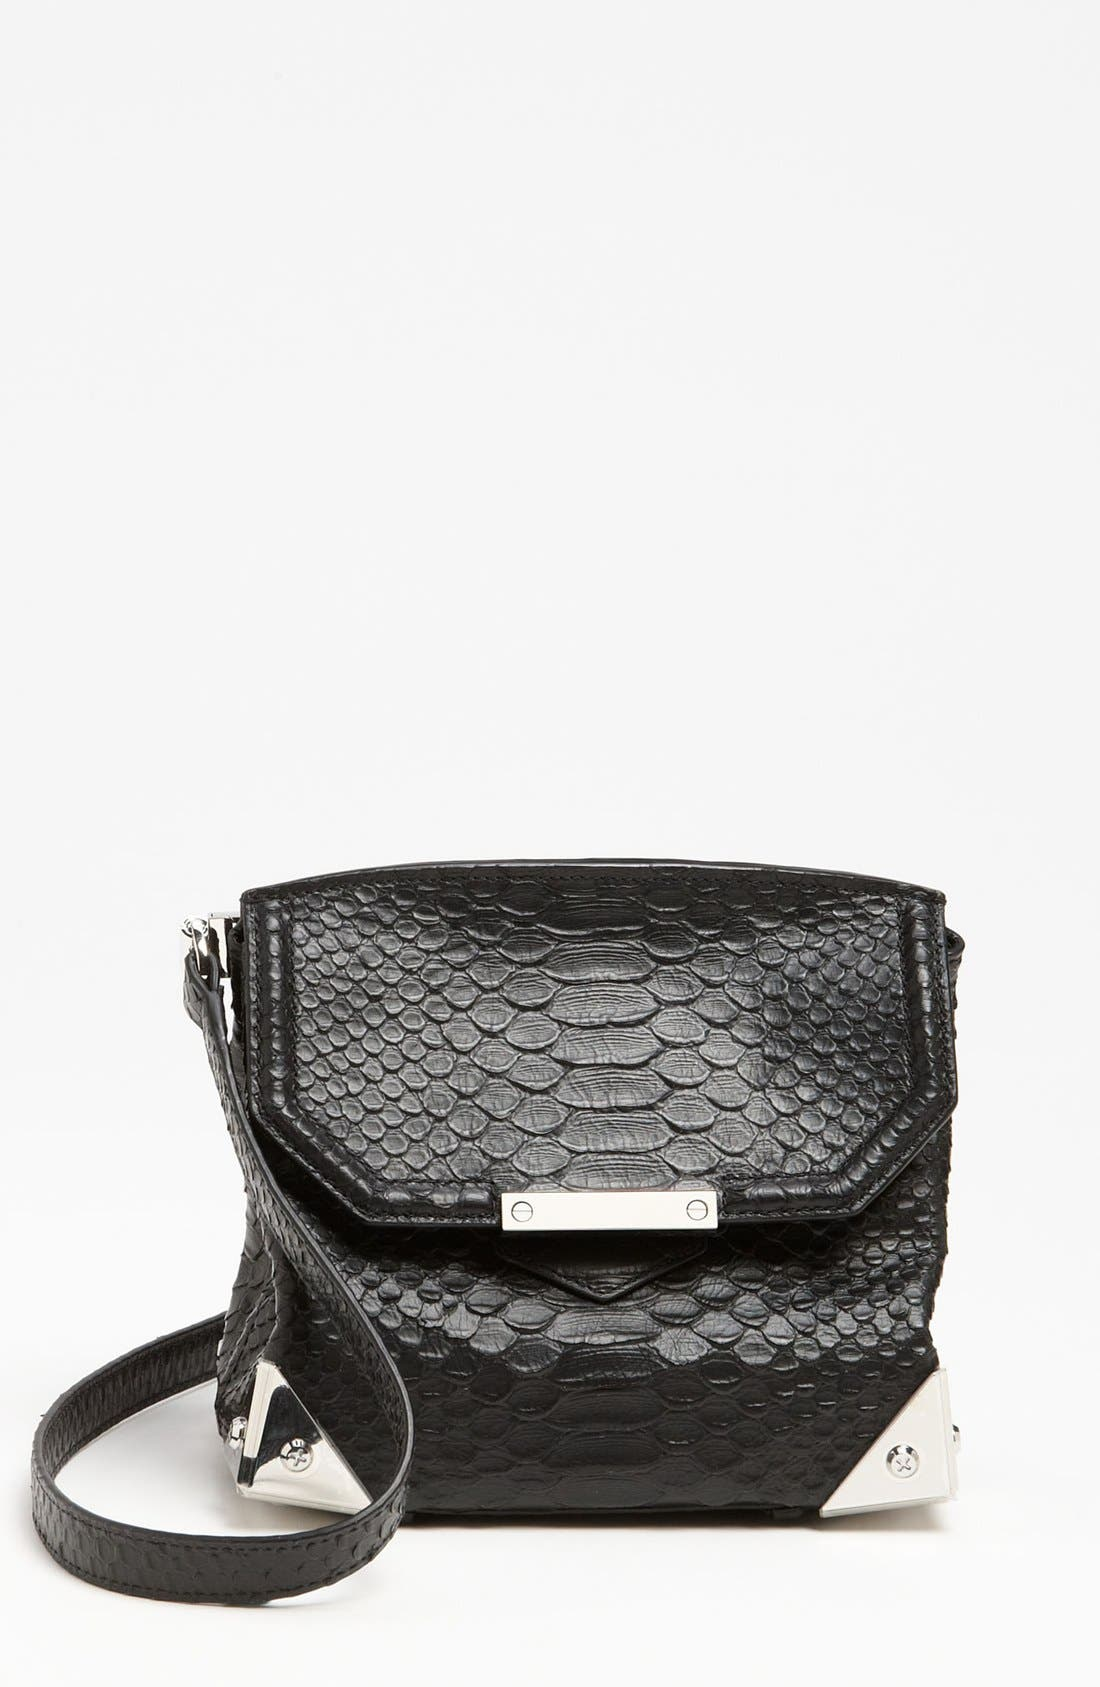 Main Image - Alexander Wang 'Marion - Prisma' Python Embossed Leather Crossbody Bag